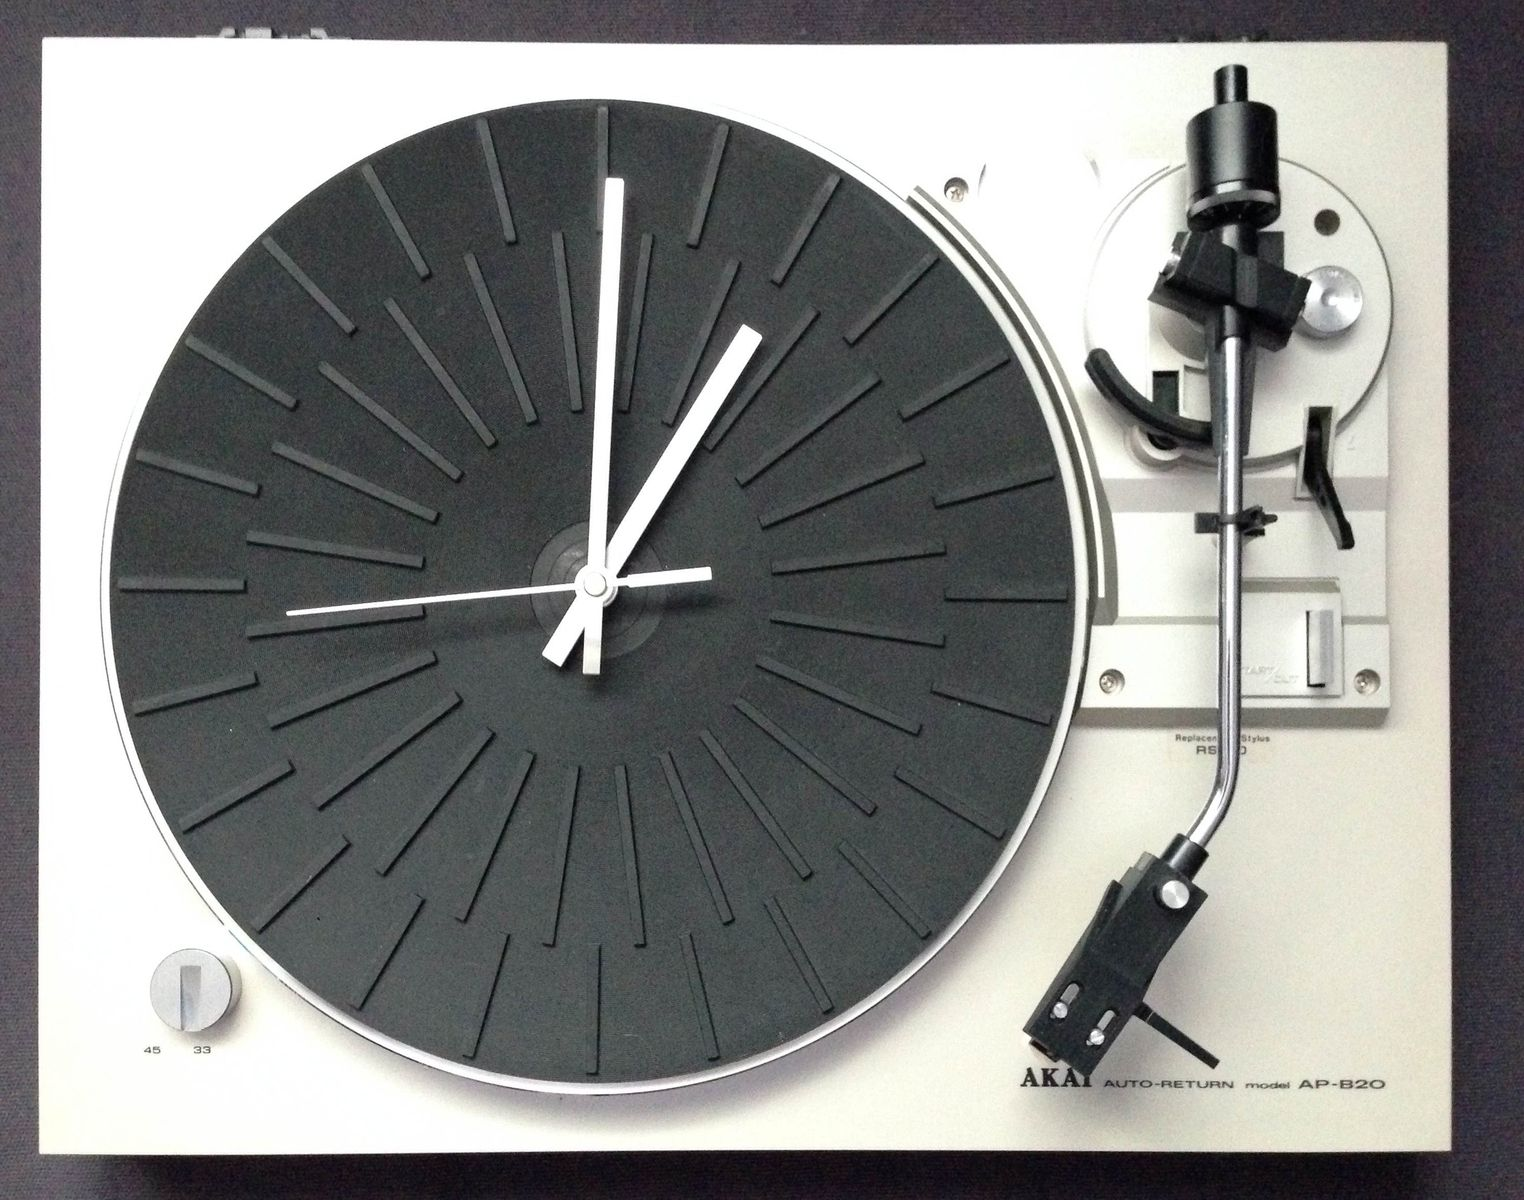 Custom retro turntable wall clock by span audio custommade custom made retro turntable wall clock amipublicfo Gallery